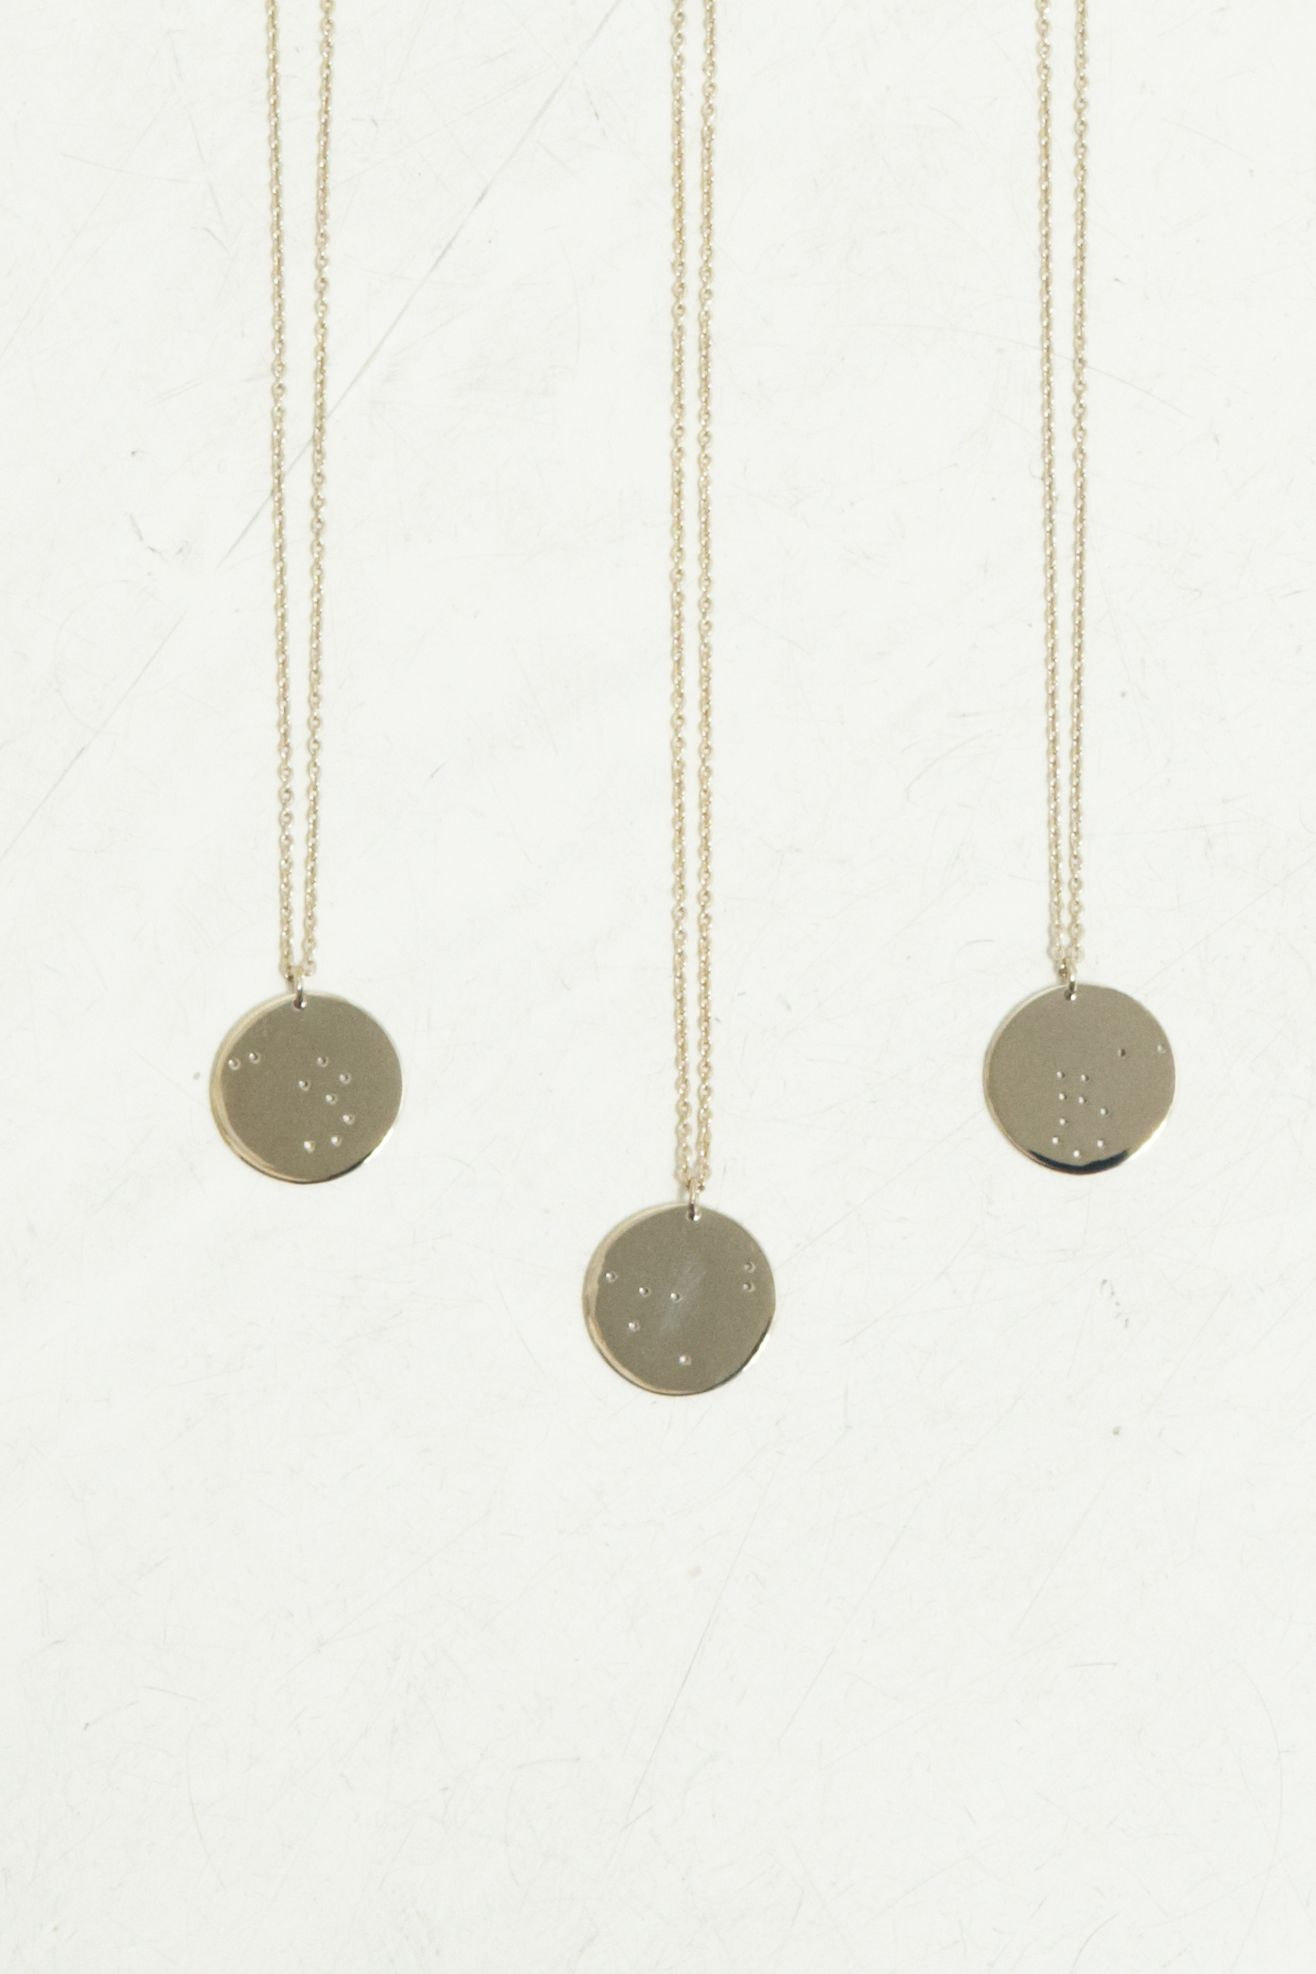 Trine tuxen zodiac necklaces all signs jewelry pinterest